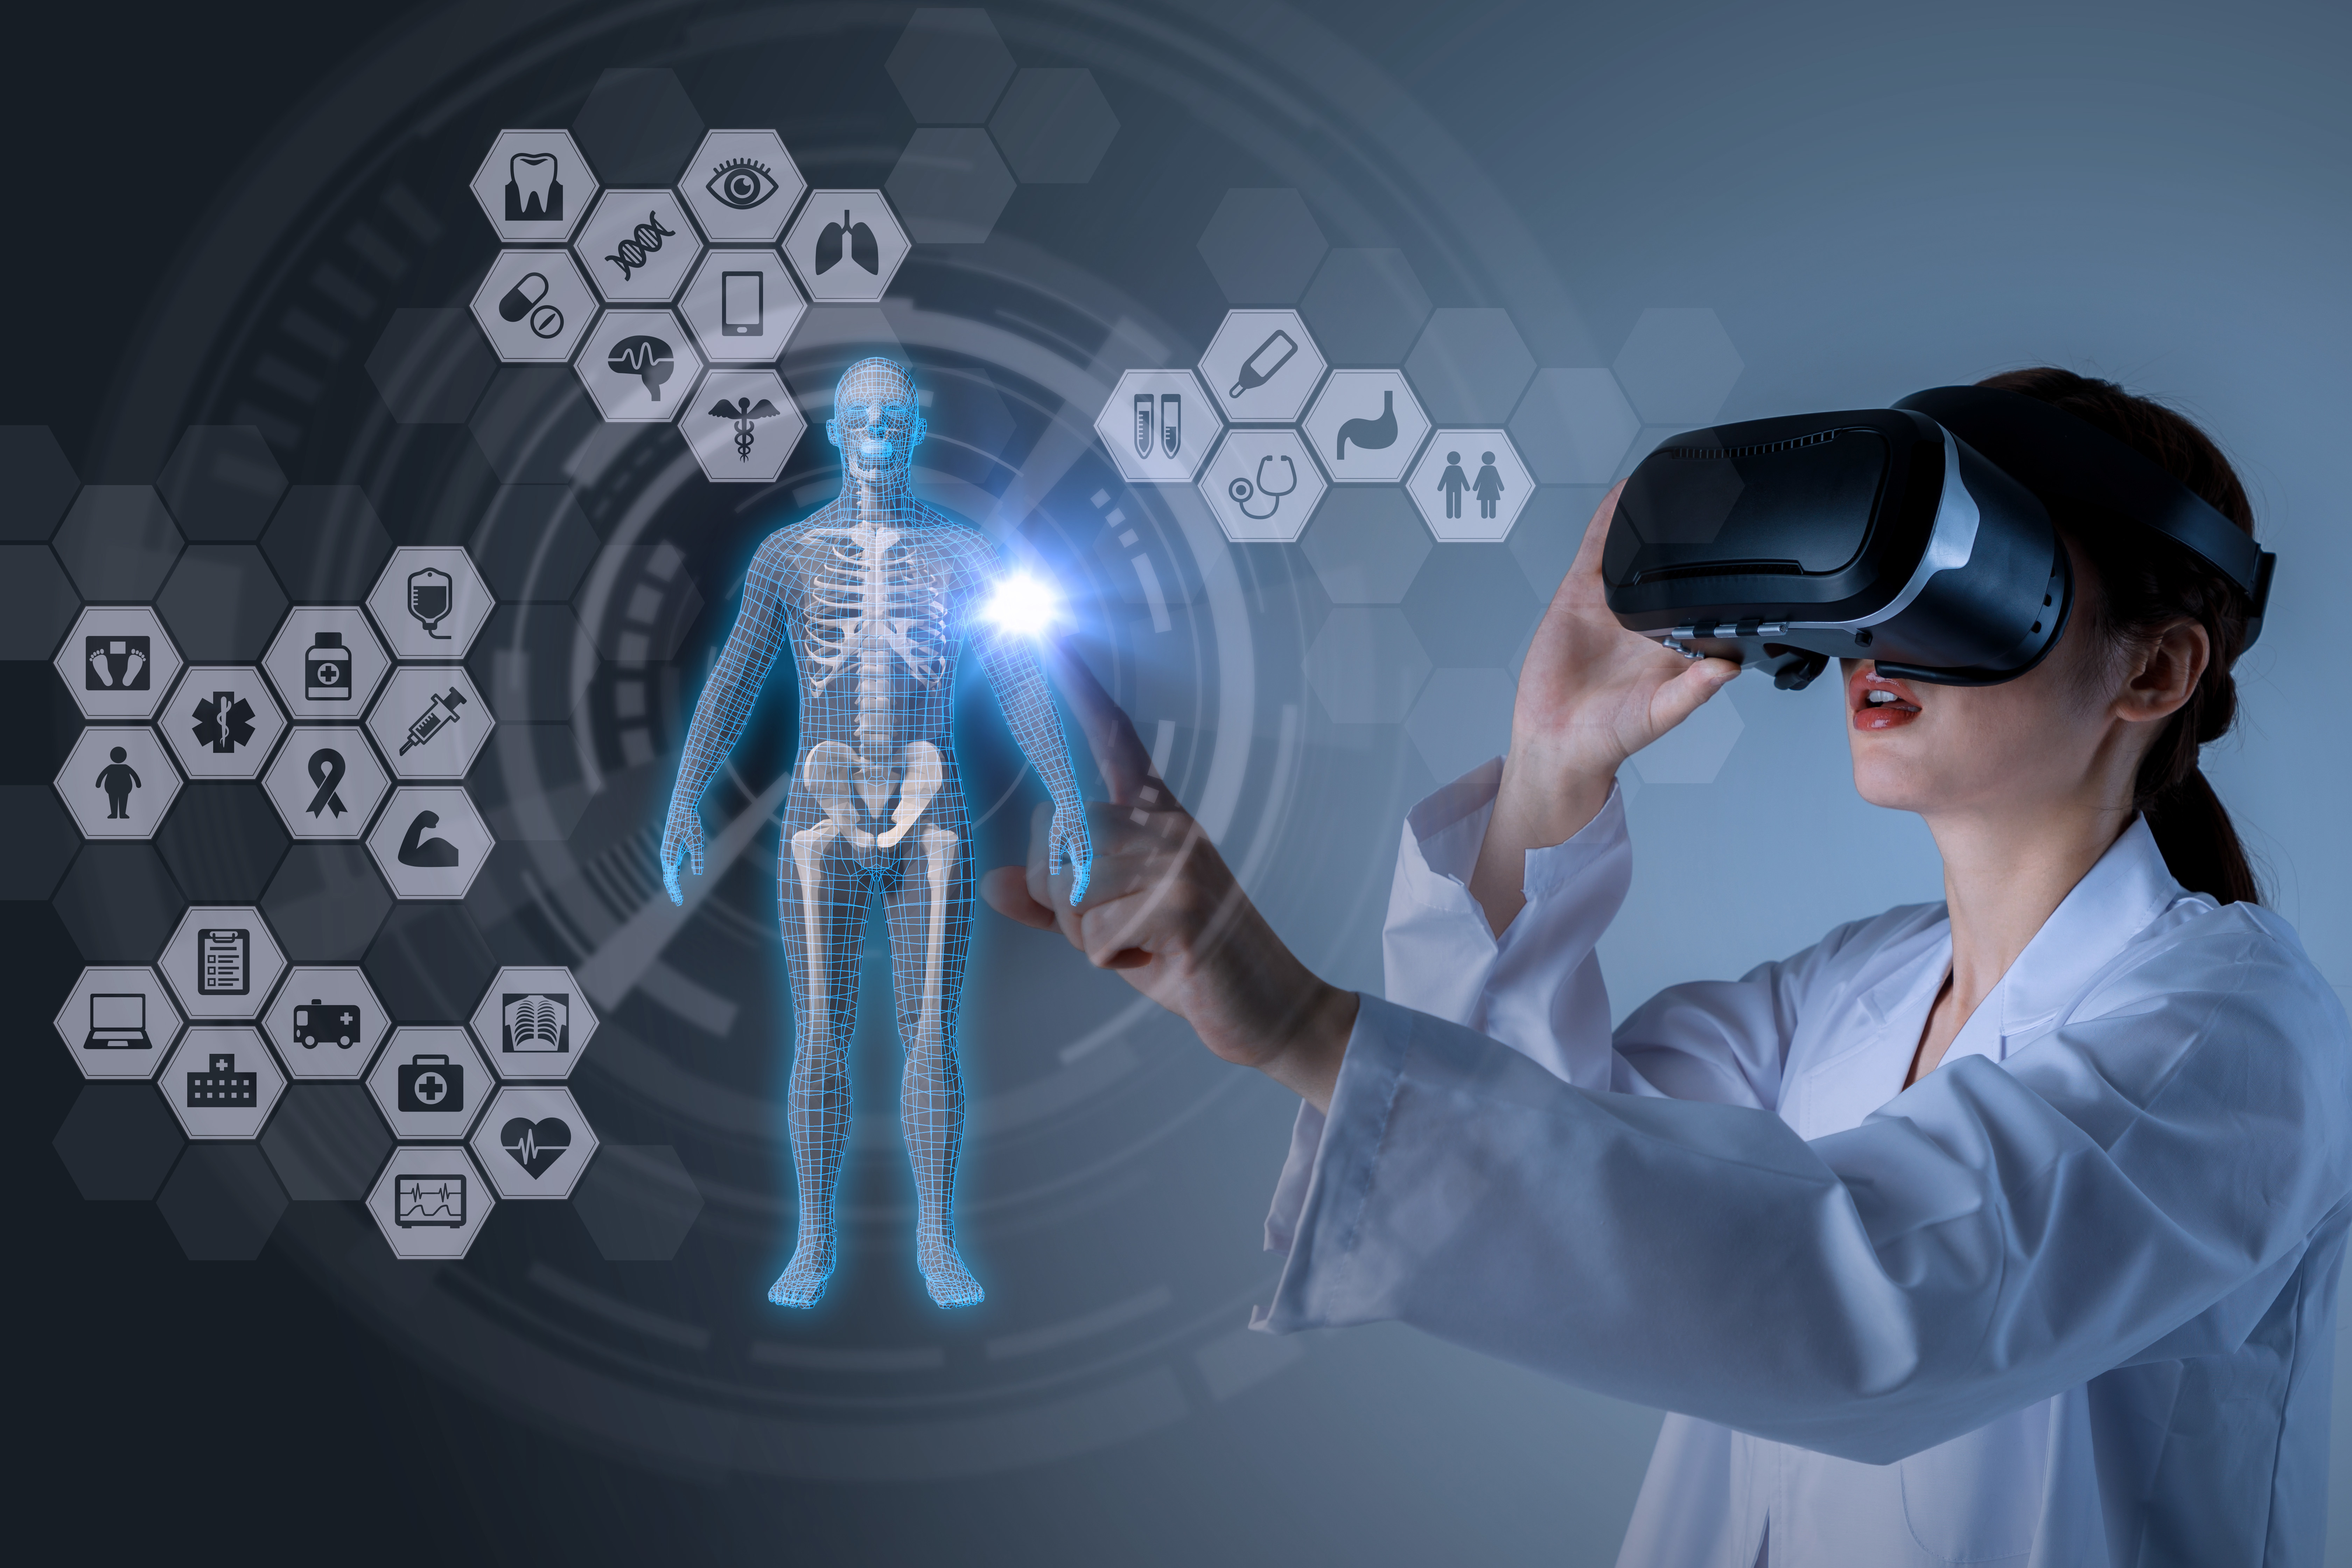 2c94011e3ab3 Virtual Reality Applications in Healthcare and Medicine - Healthcare ...